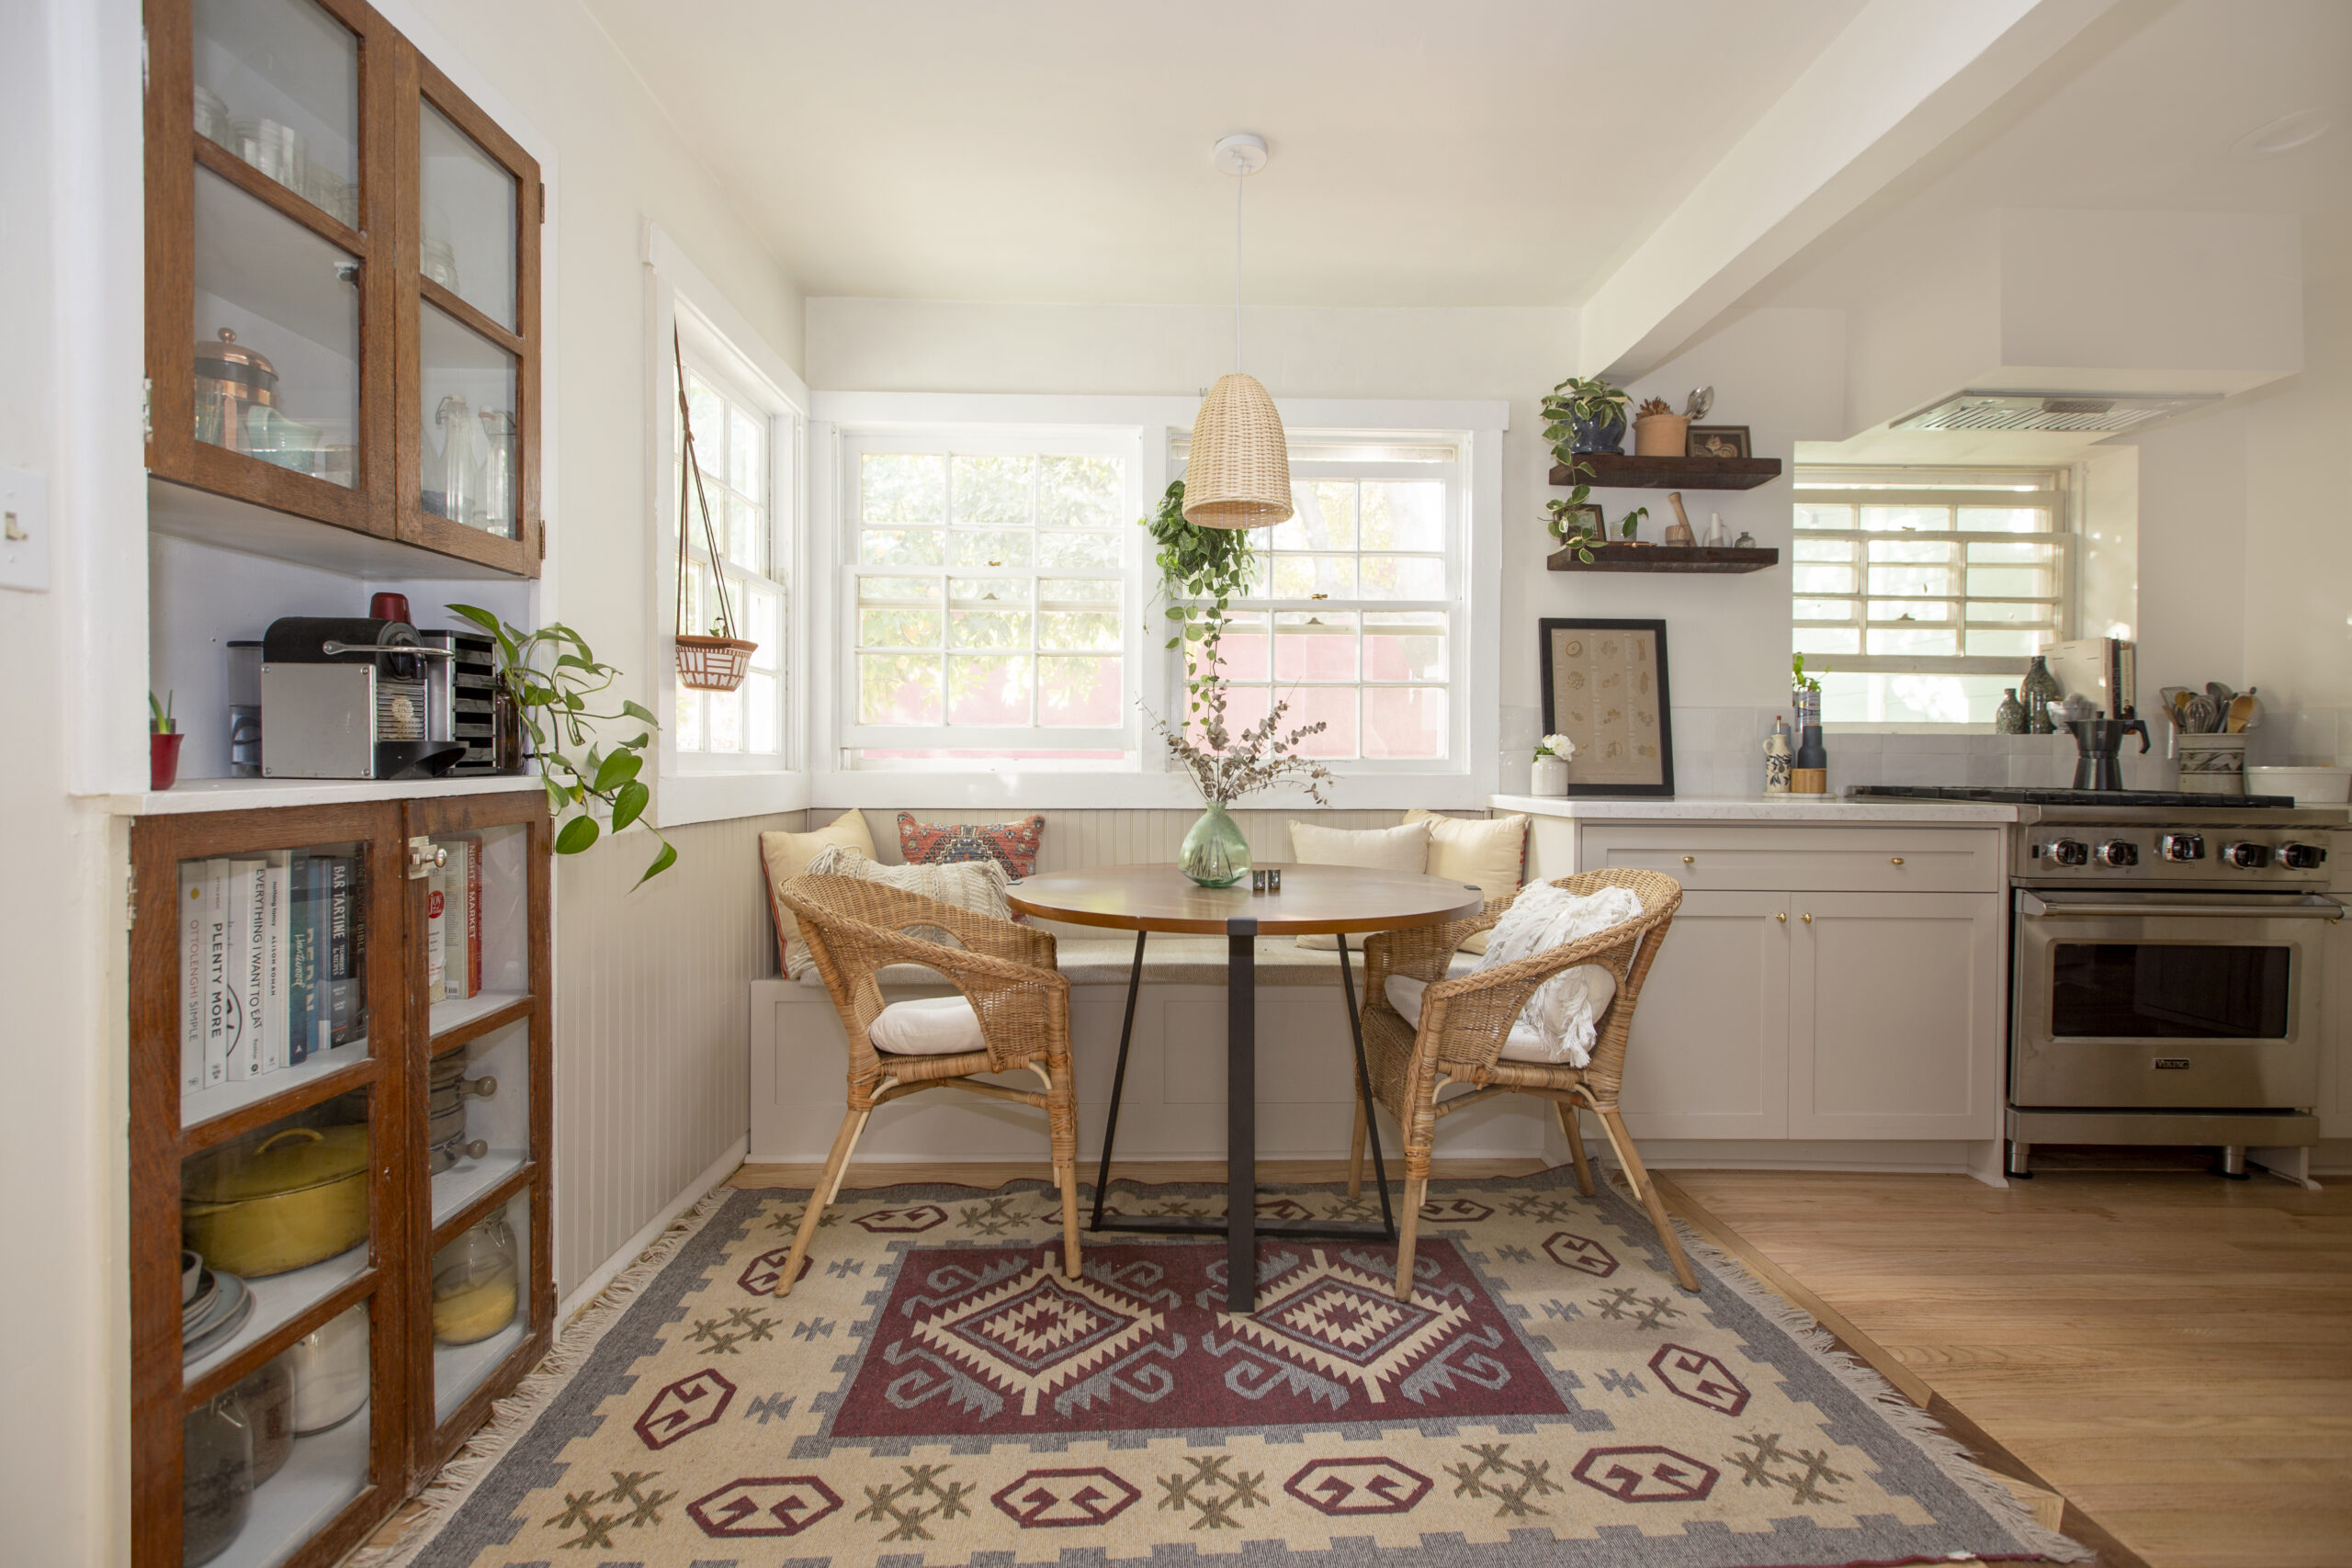 Breakfast nook in transitional home